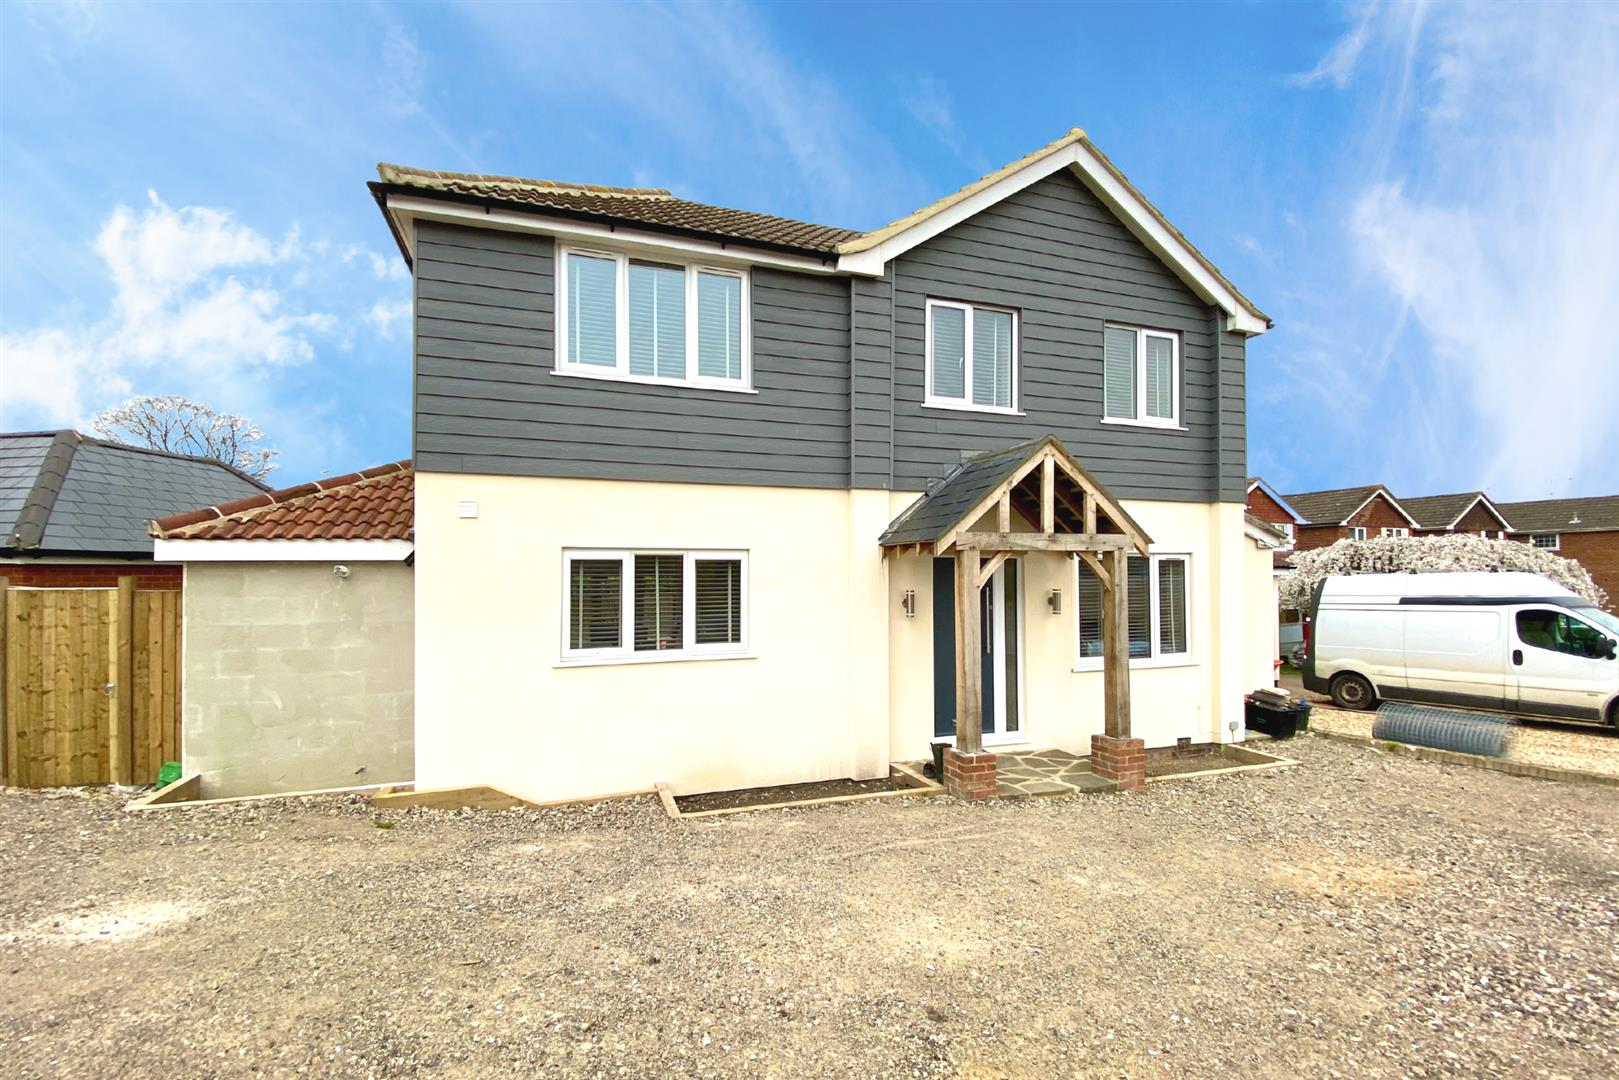 4 bed detached for sale in Shinfield, RG2